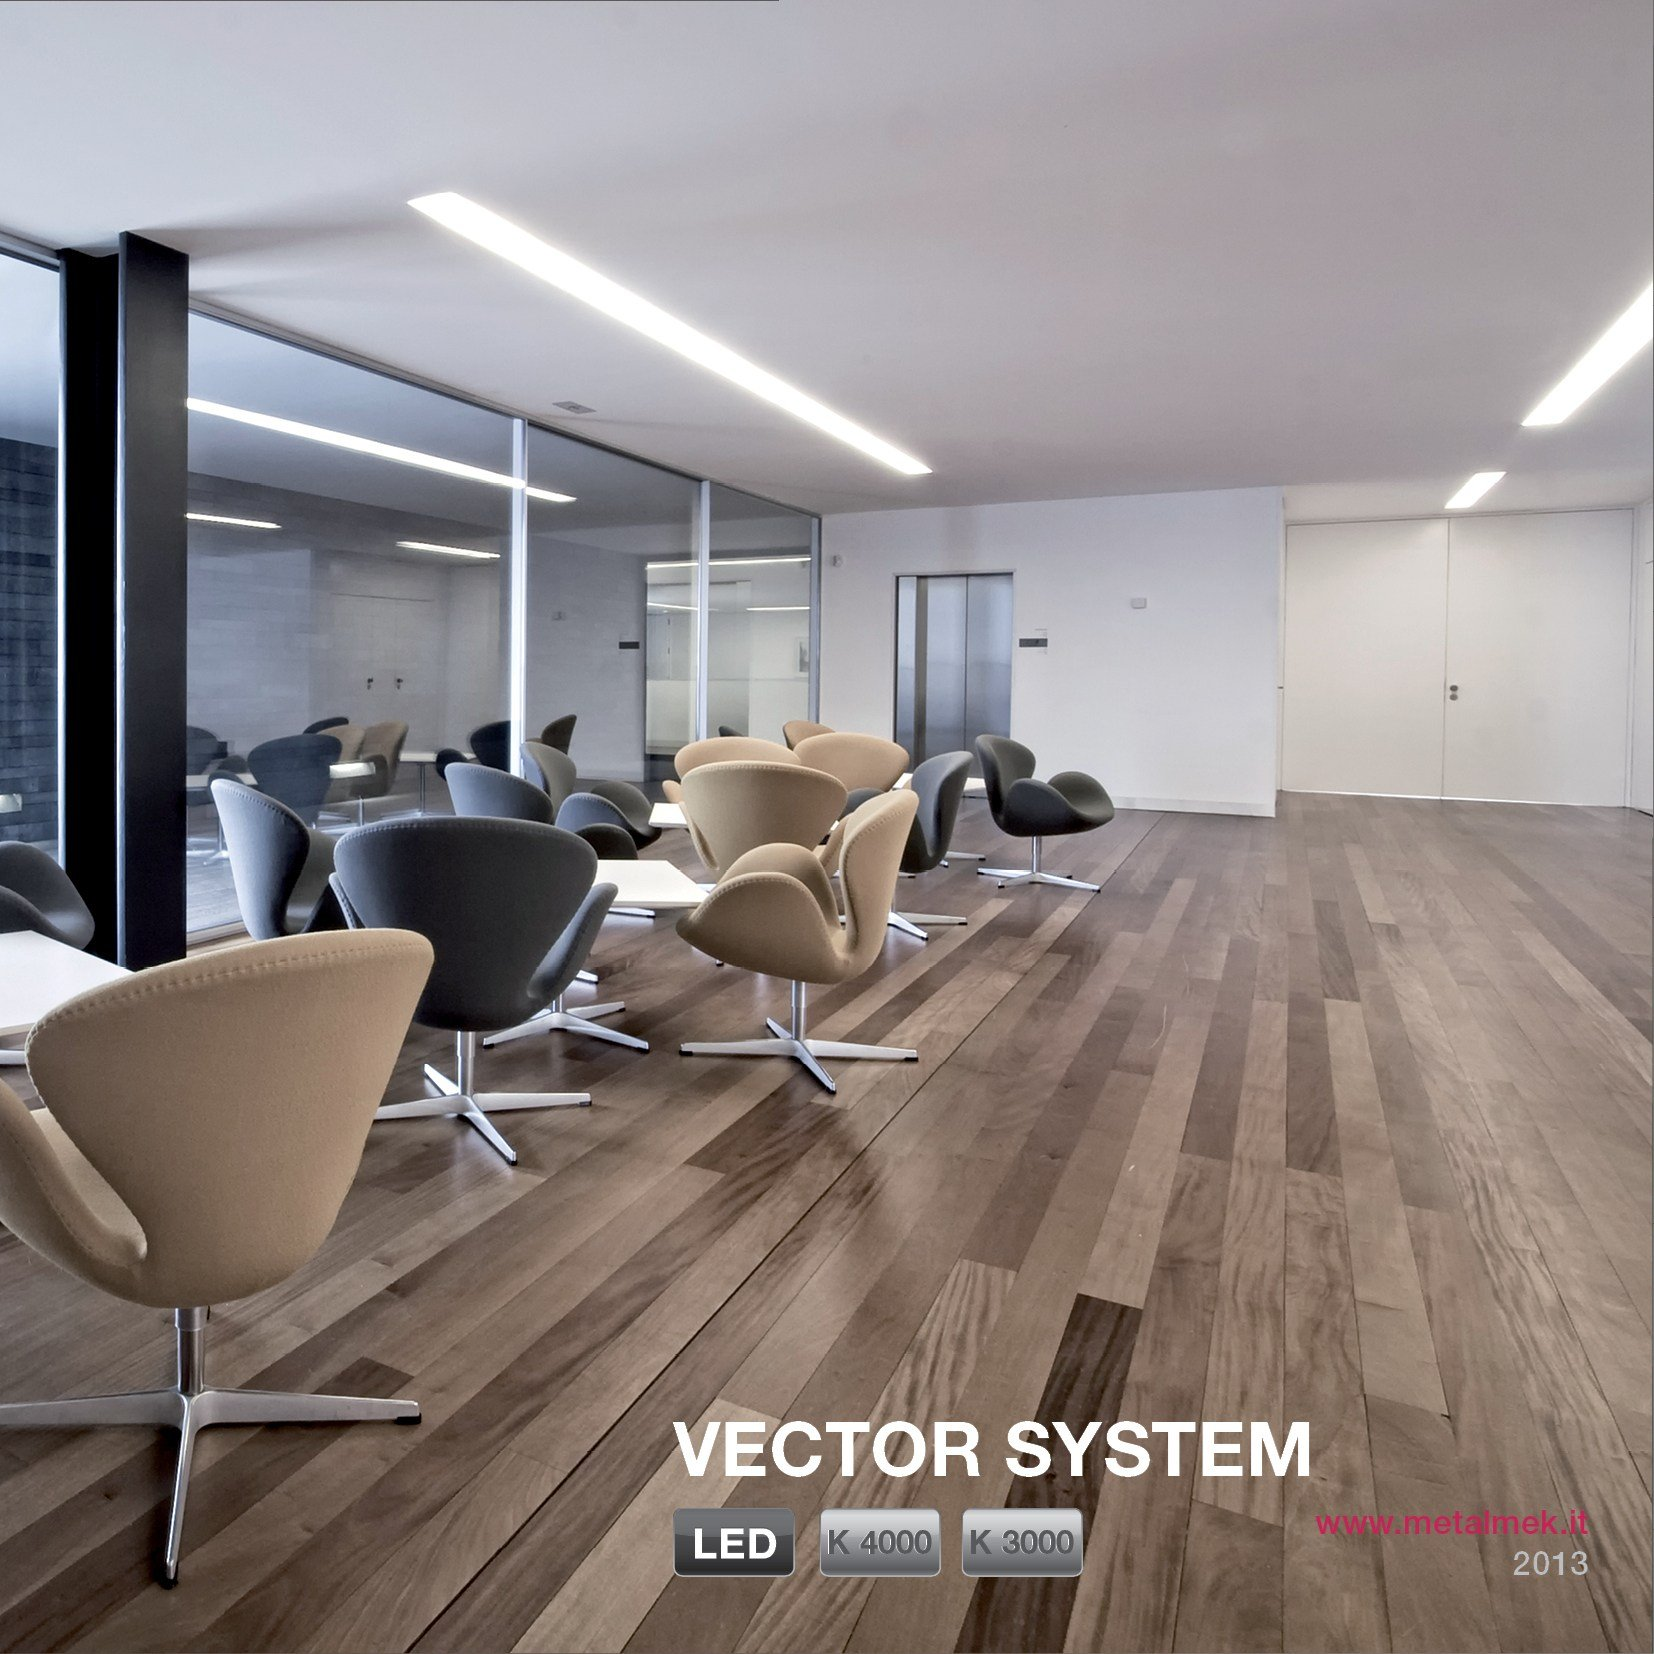 VECTOR SYSTEM Linear LED light bar by METALMEK ILLUMINAZIONE design METALMEK ILLUMINAZIONE